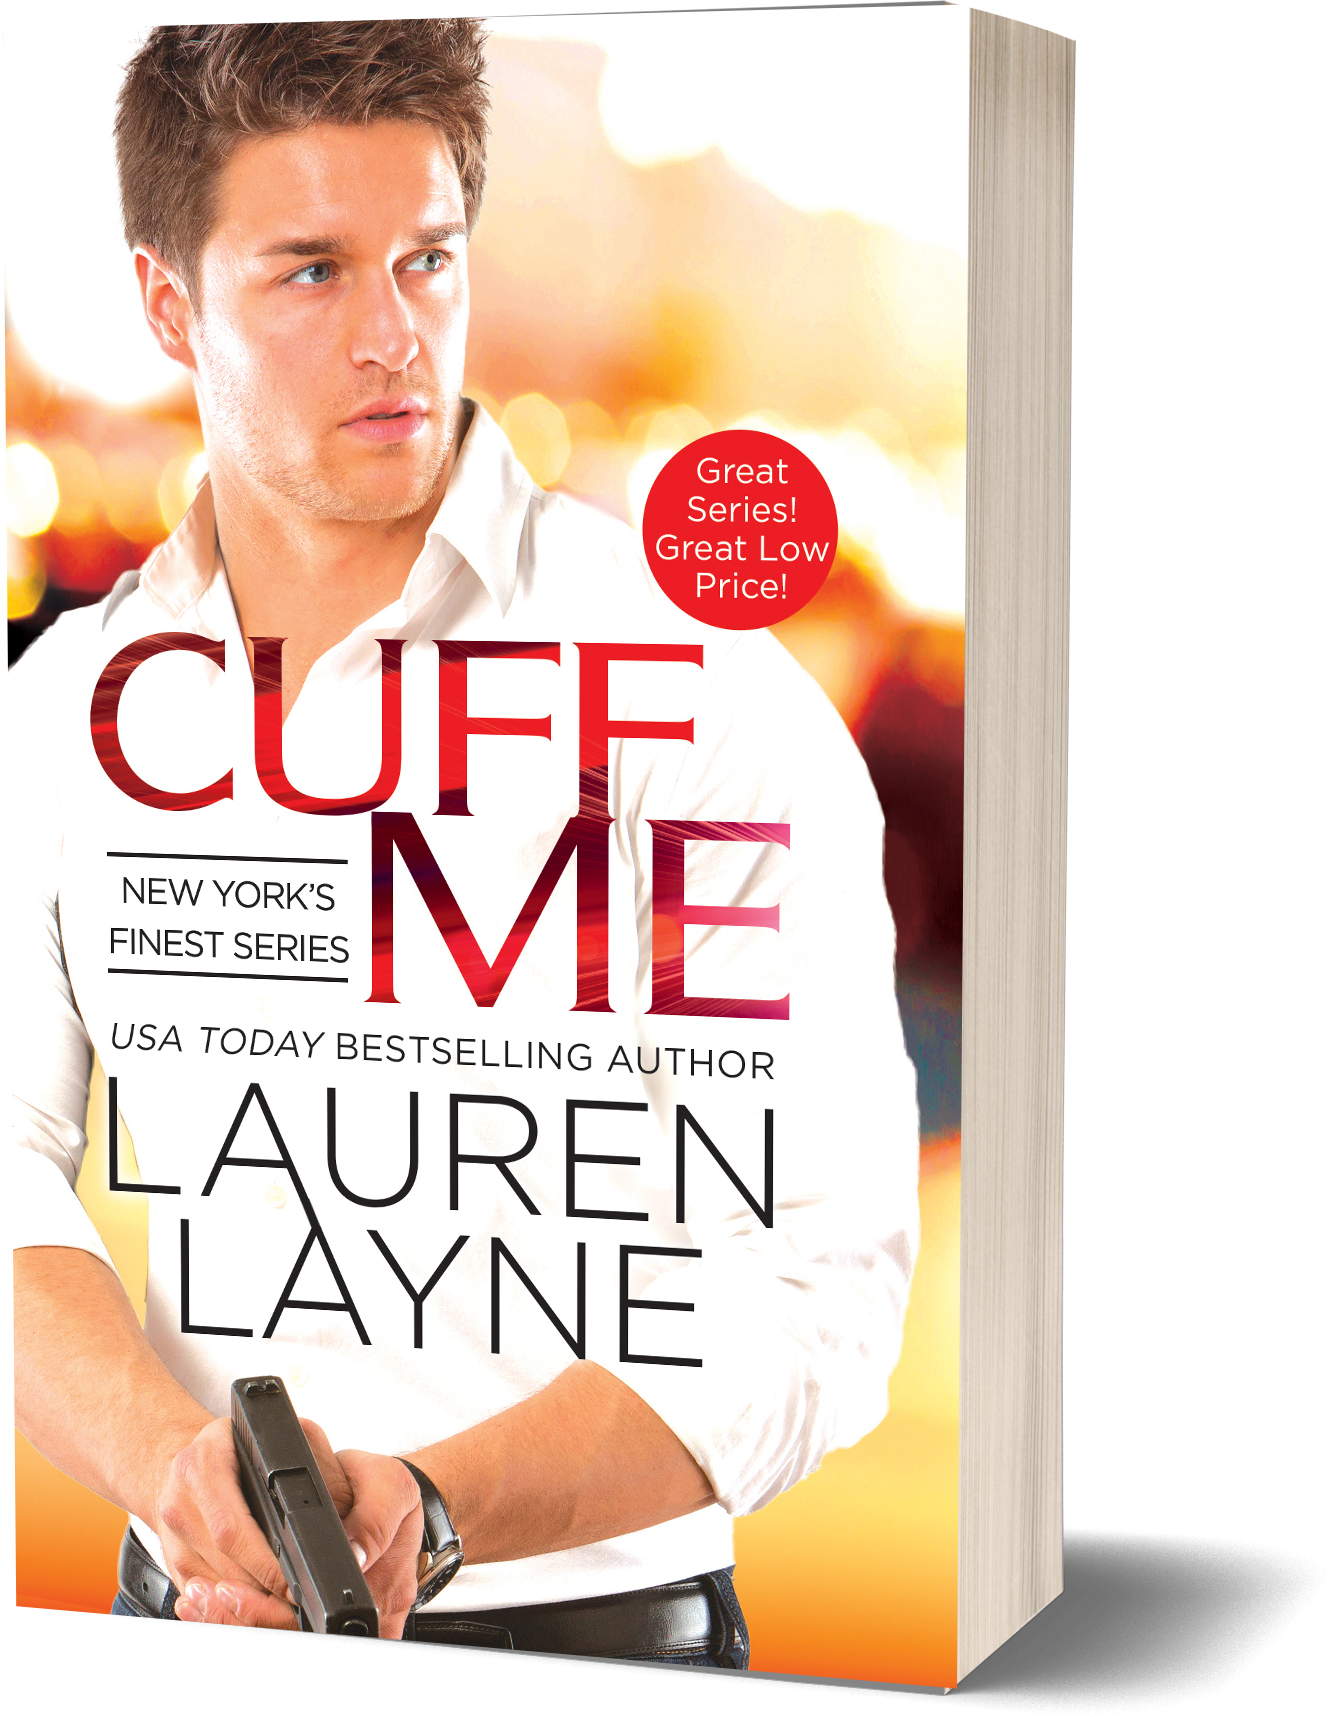 Cuff Me by Lauren Layne